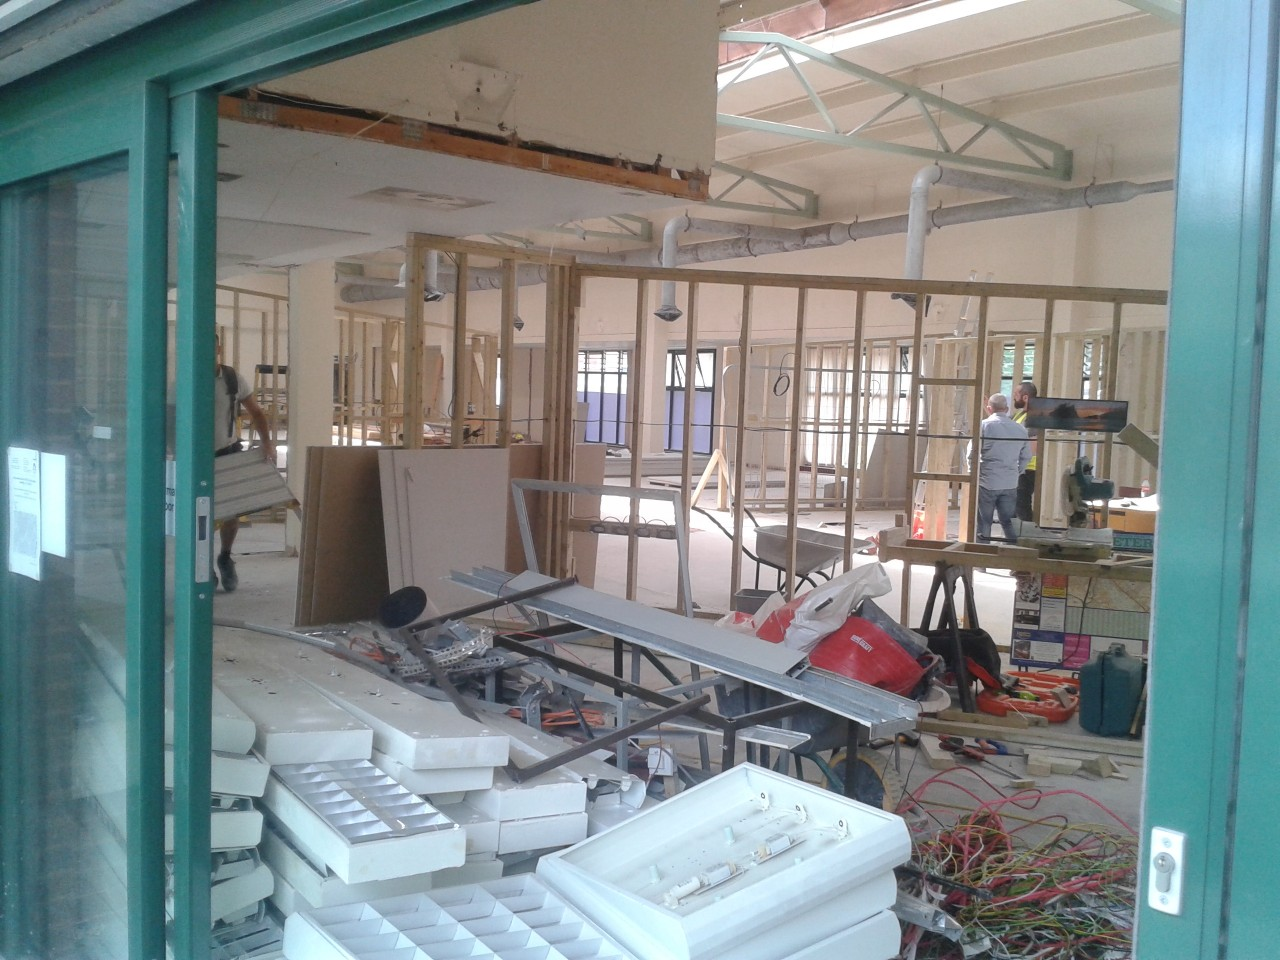 Work continues apace at the Wellbeing Hub